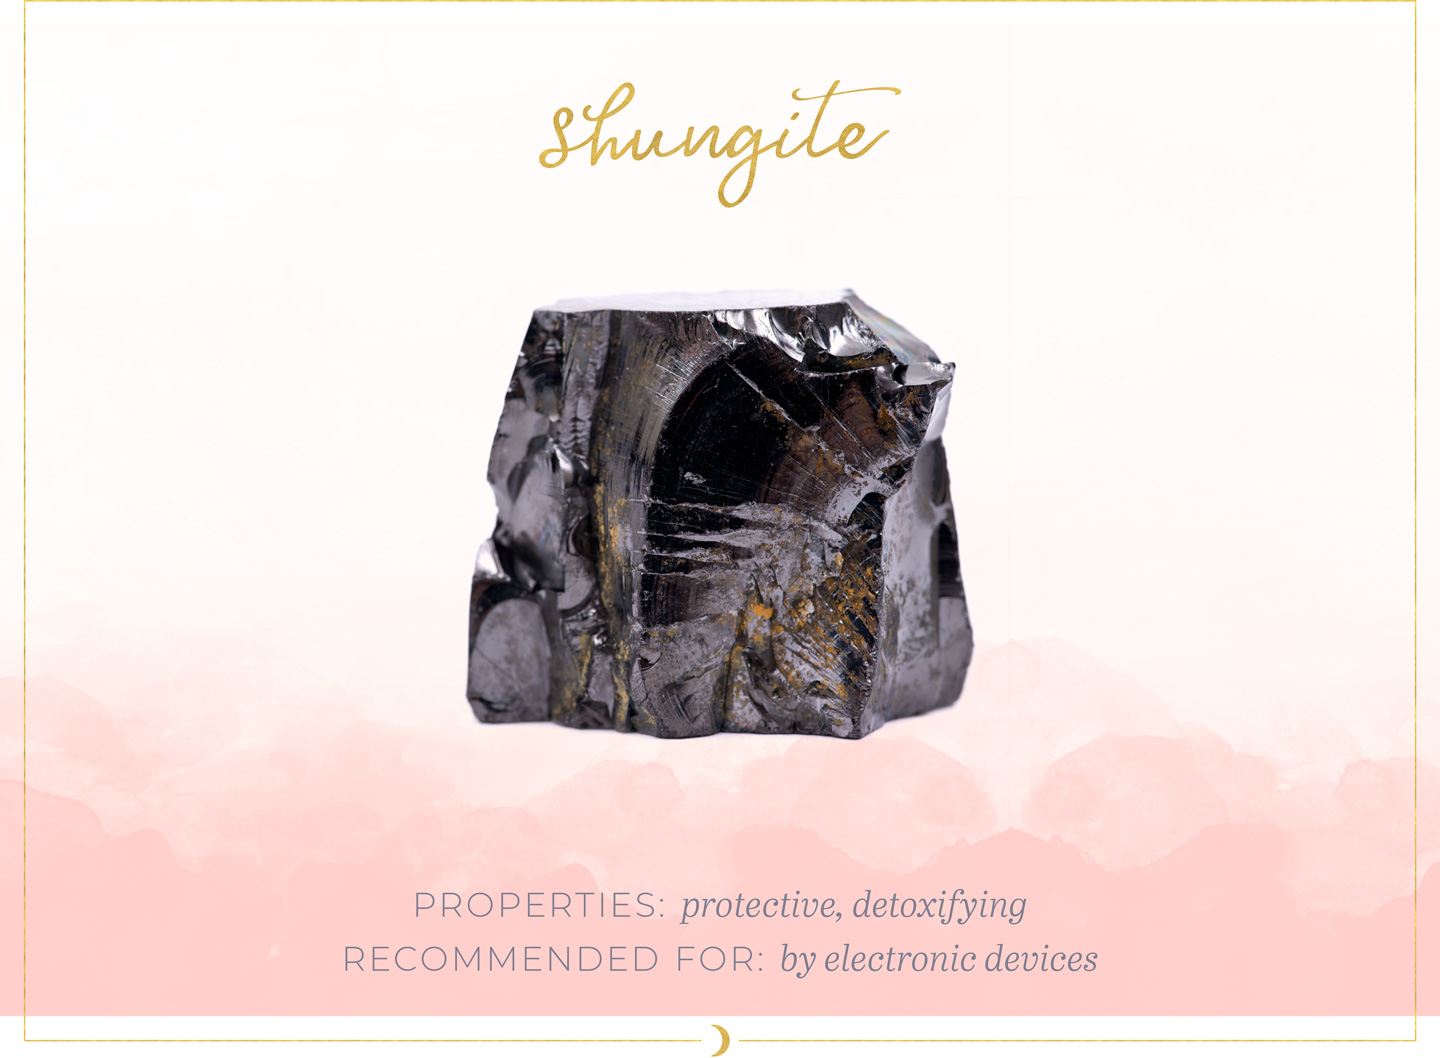 Crystals In Your Home - Shungite